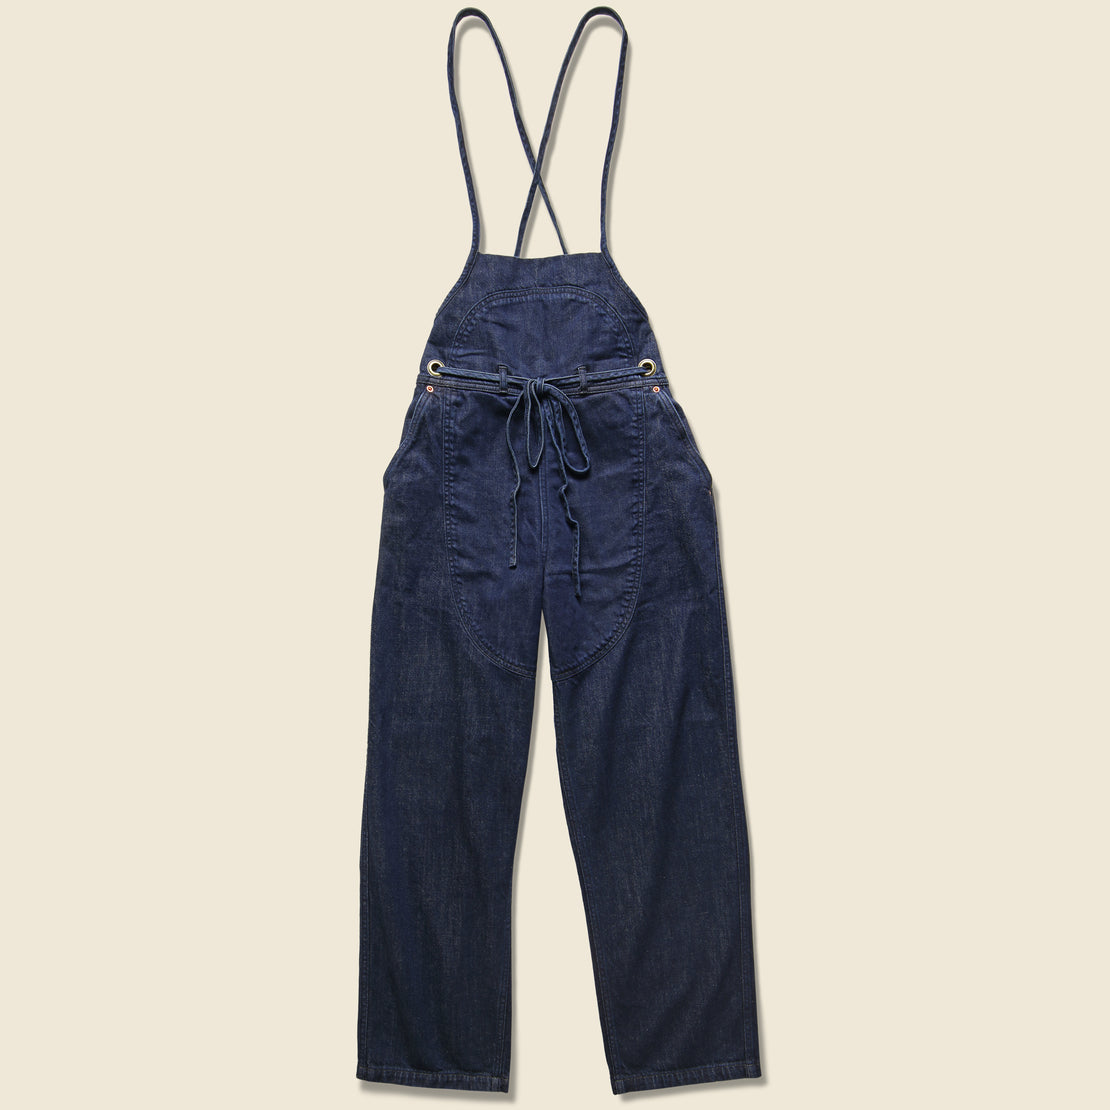 Kapital Denim Welder Overall - 12oz. Indigo